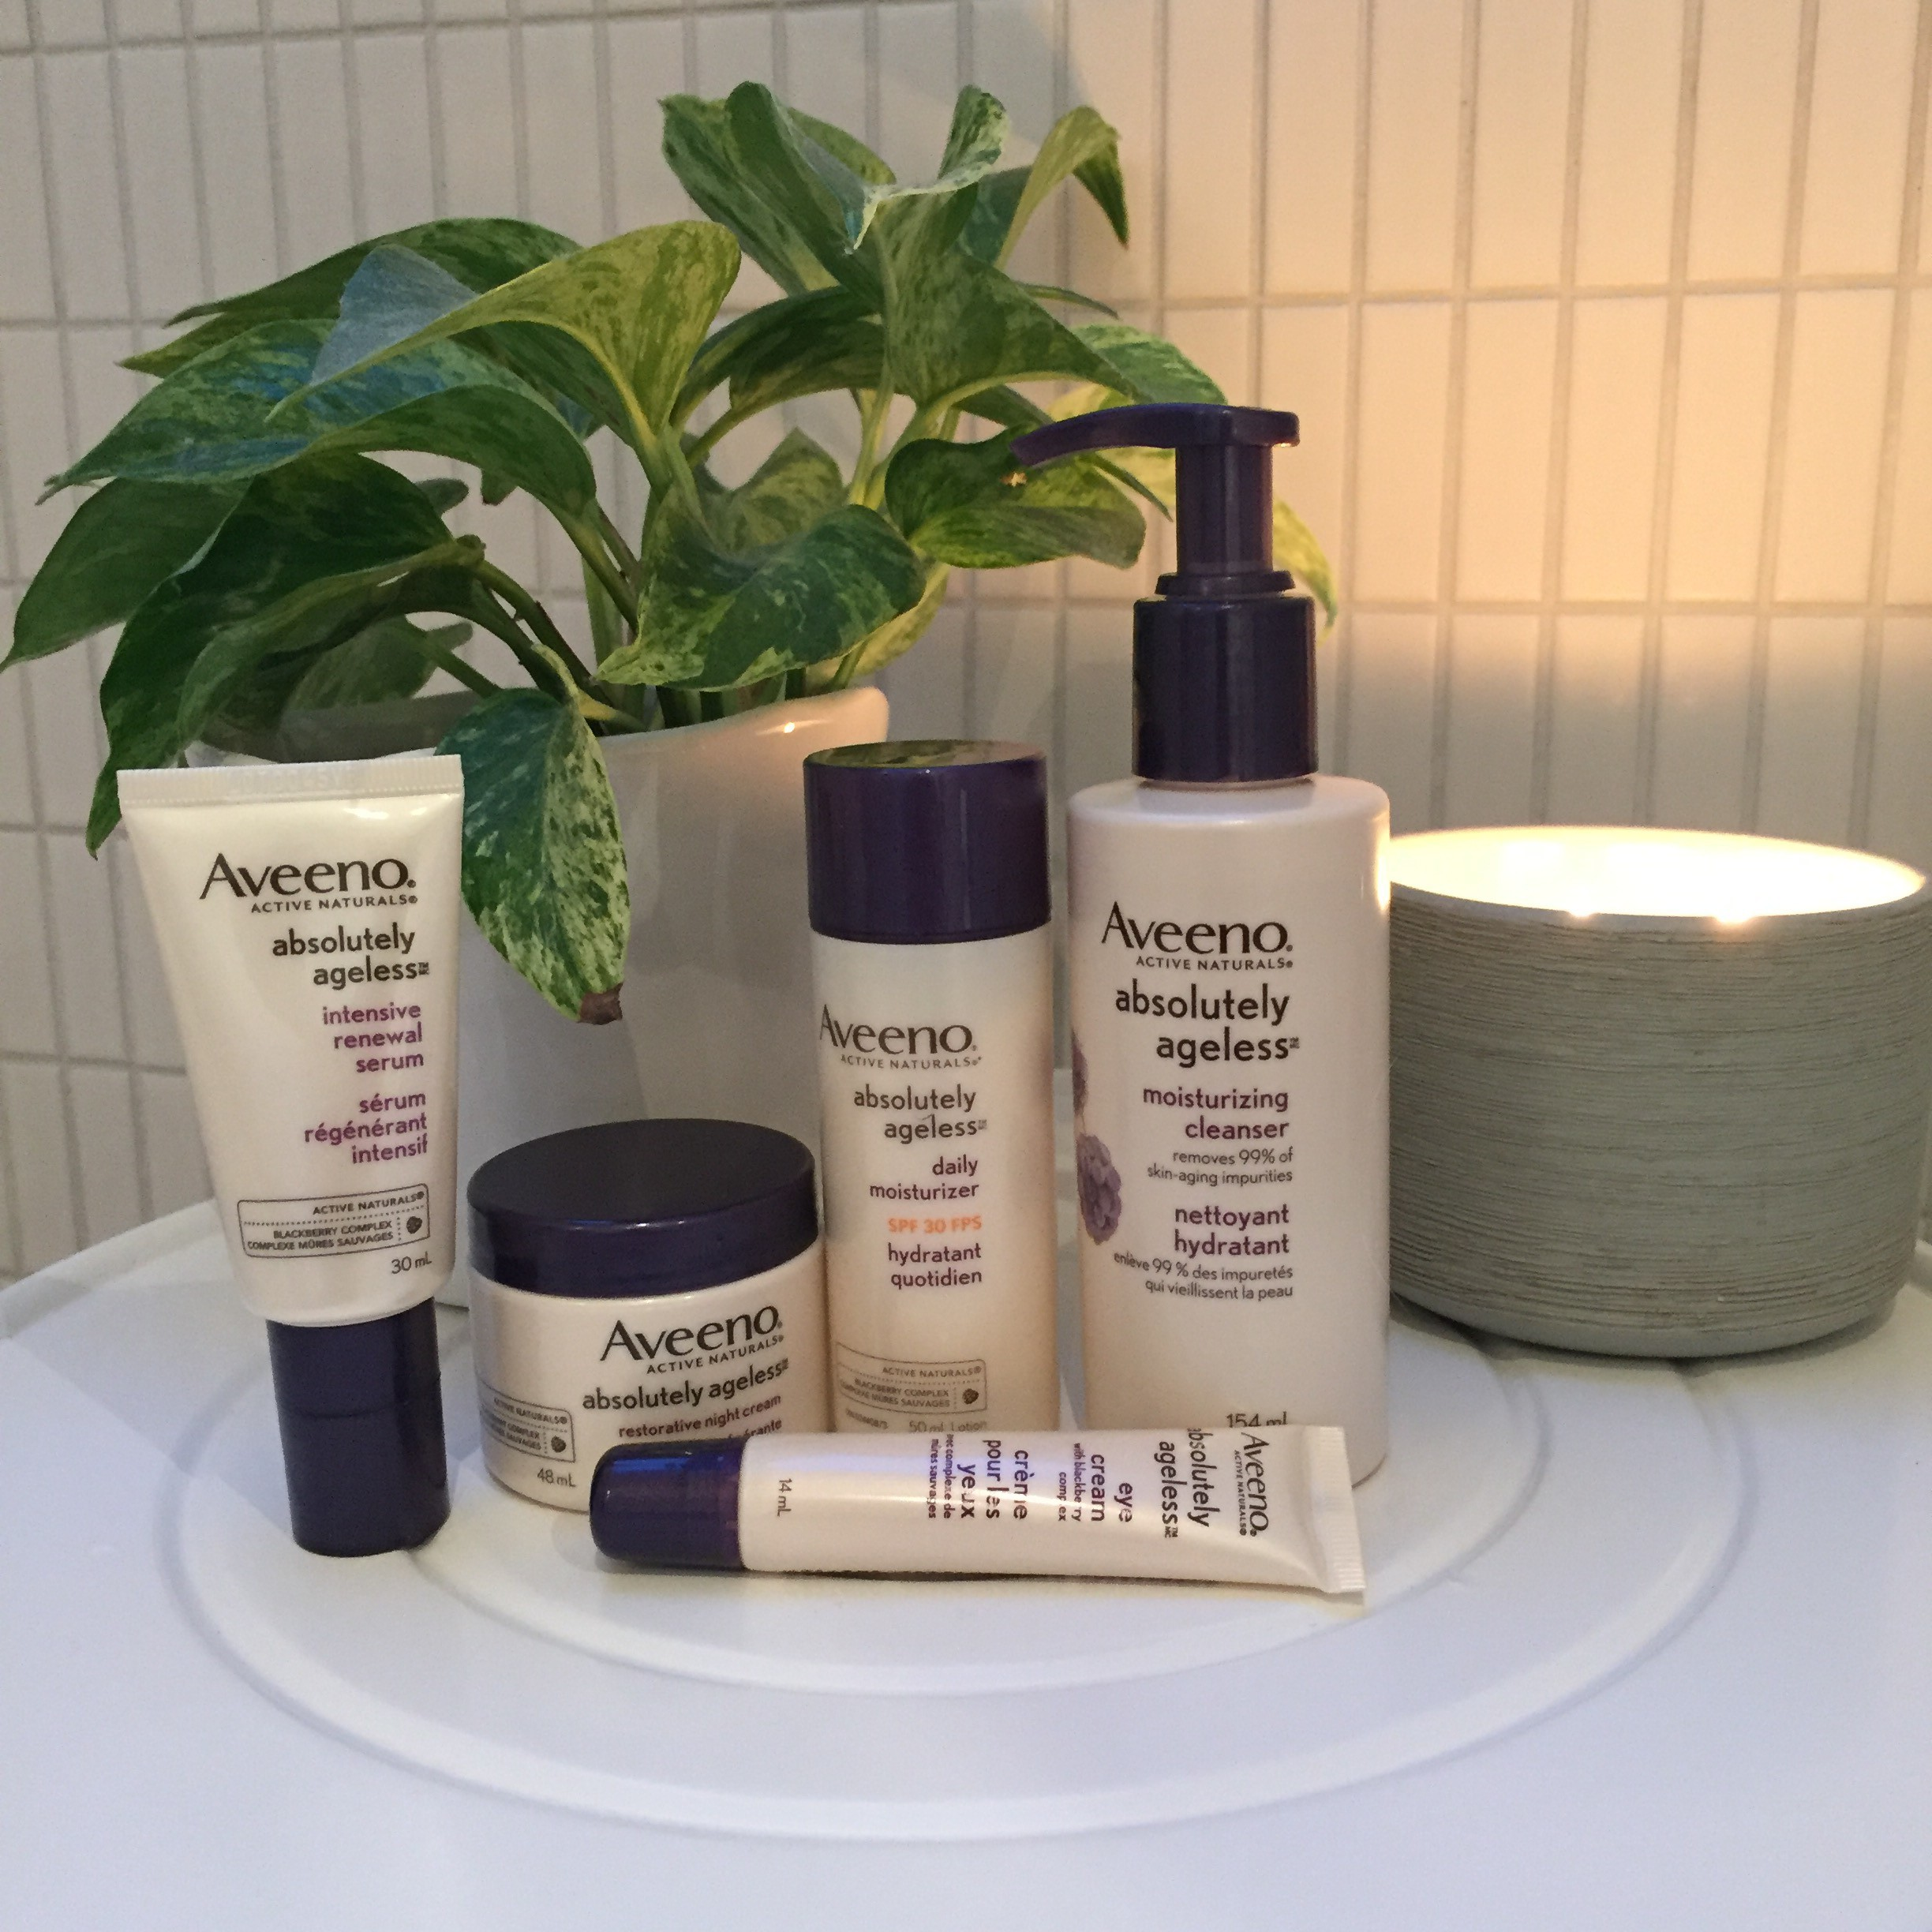 Aveeno Absolutely Ageless Skincare Line - Strolling the City in Heels